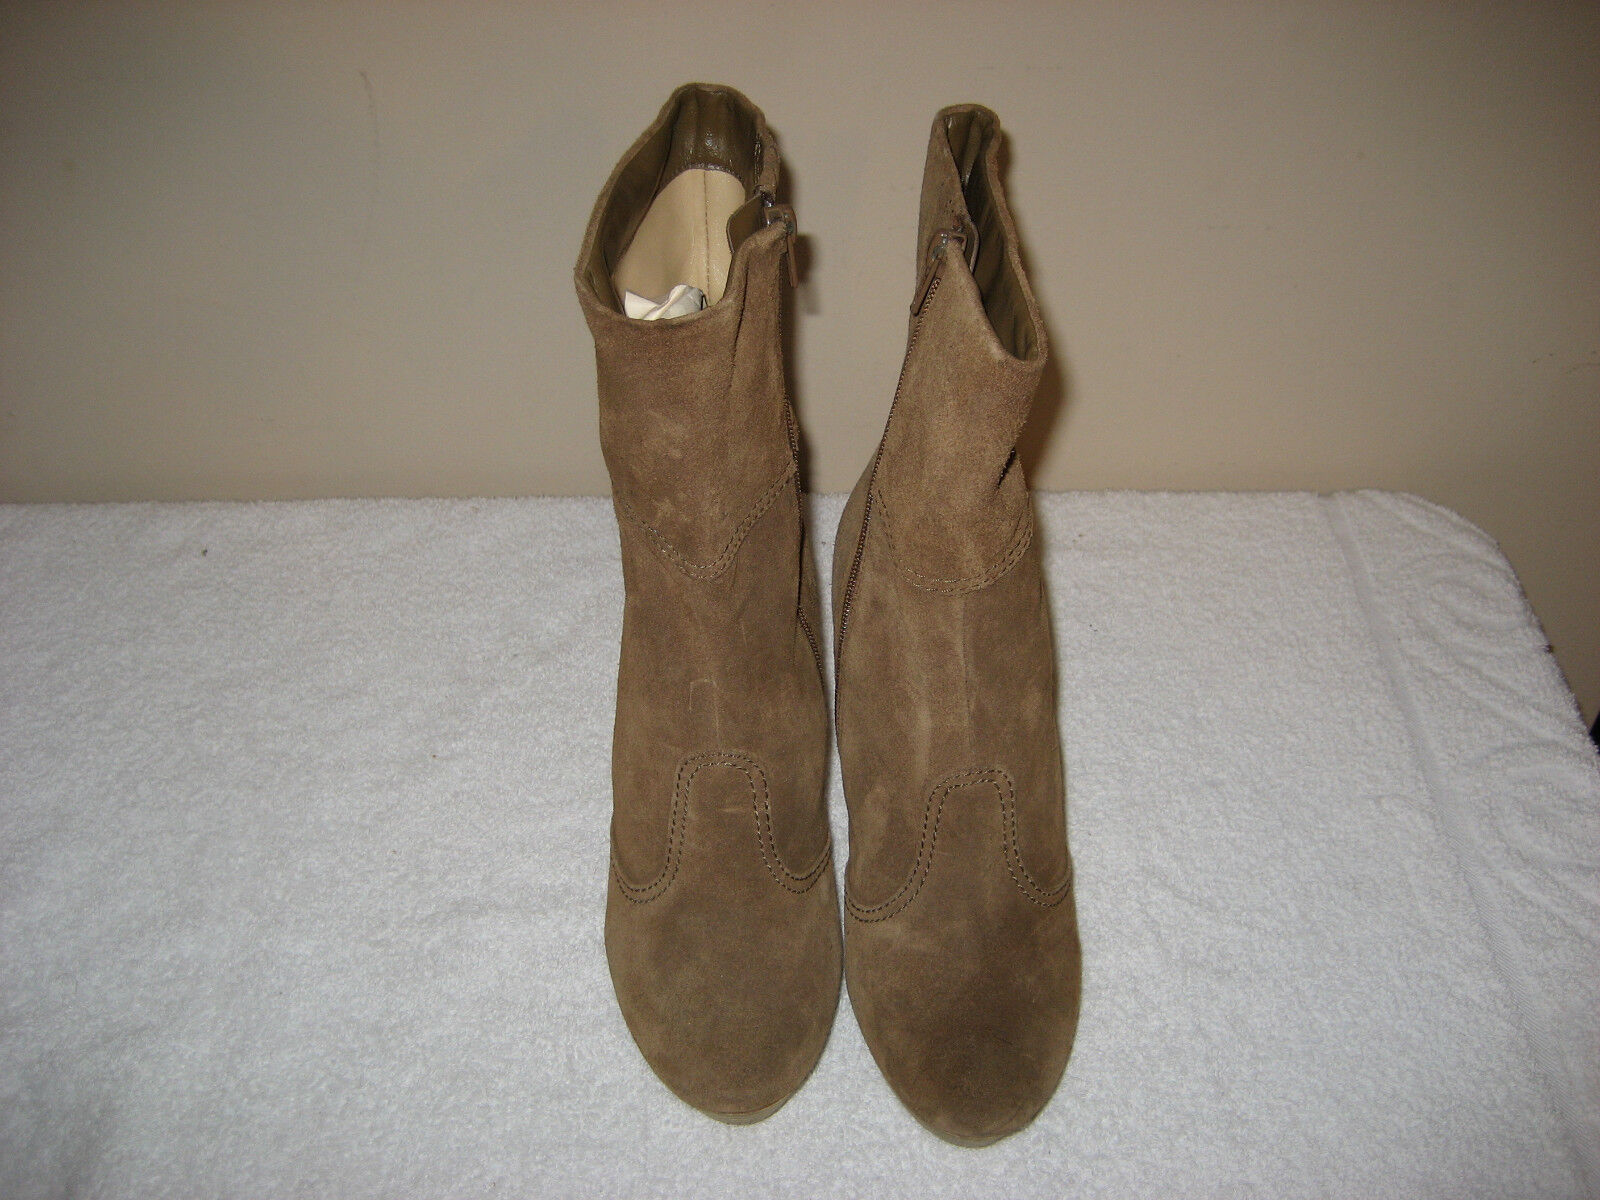 Brown Suede BCBG AUBREY ALL LEATHER TALL Heel Boots SIZE 8